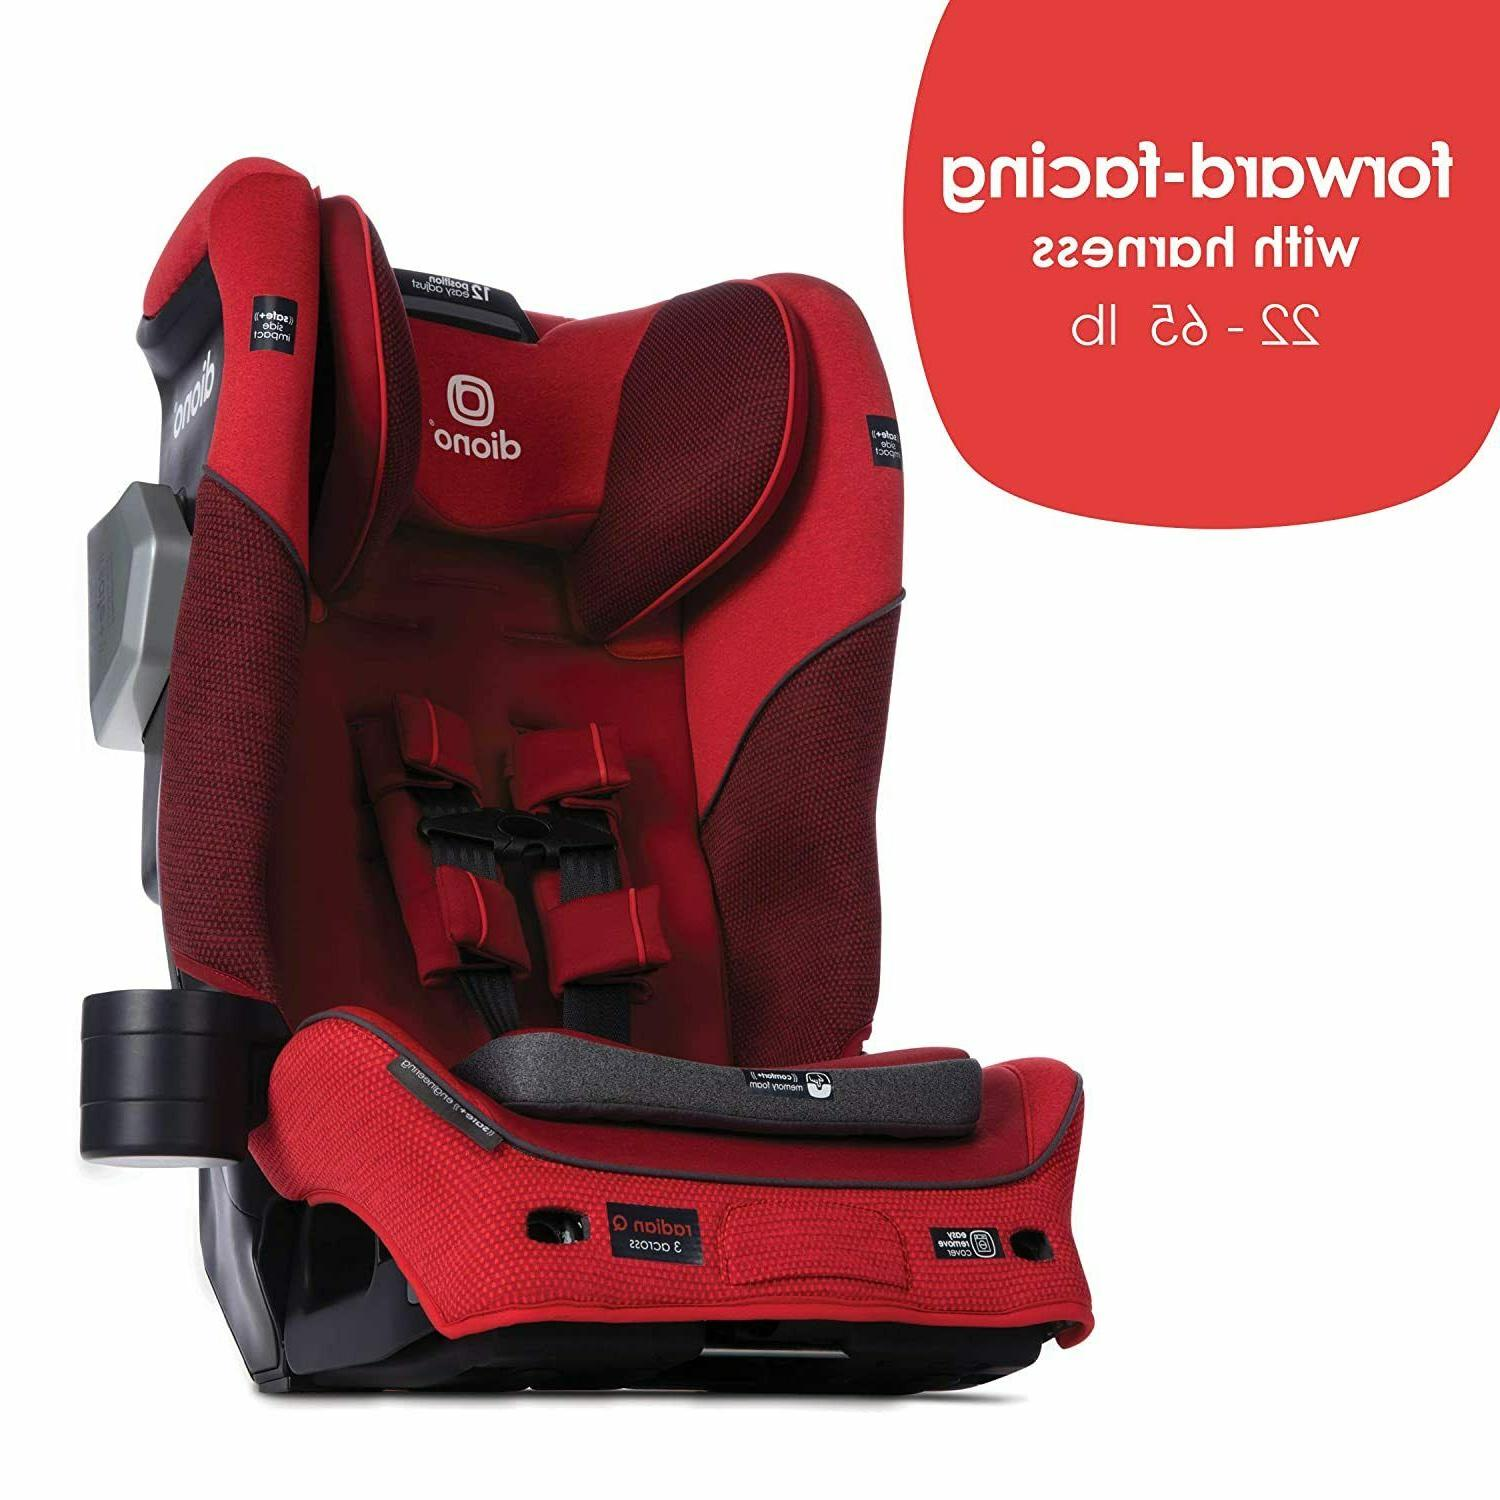 Diono All-In-One Booster Safety Car Seat